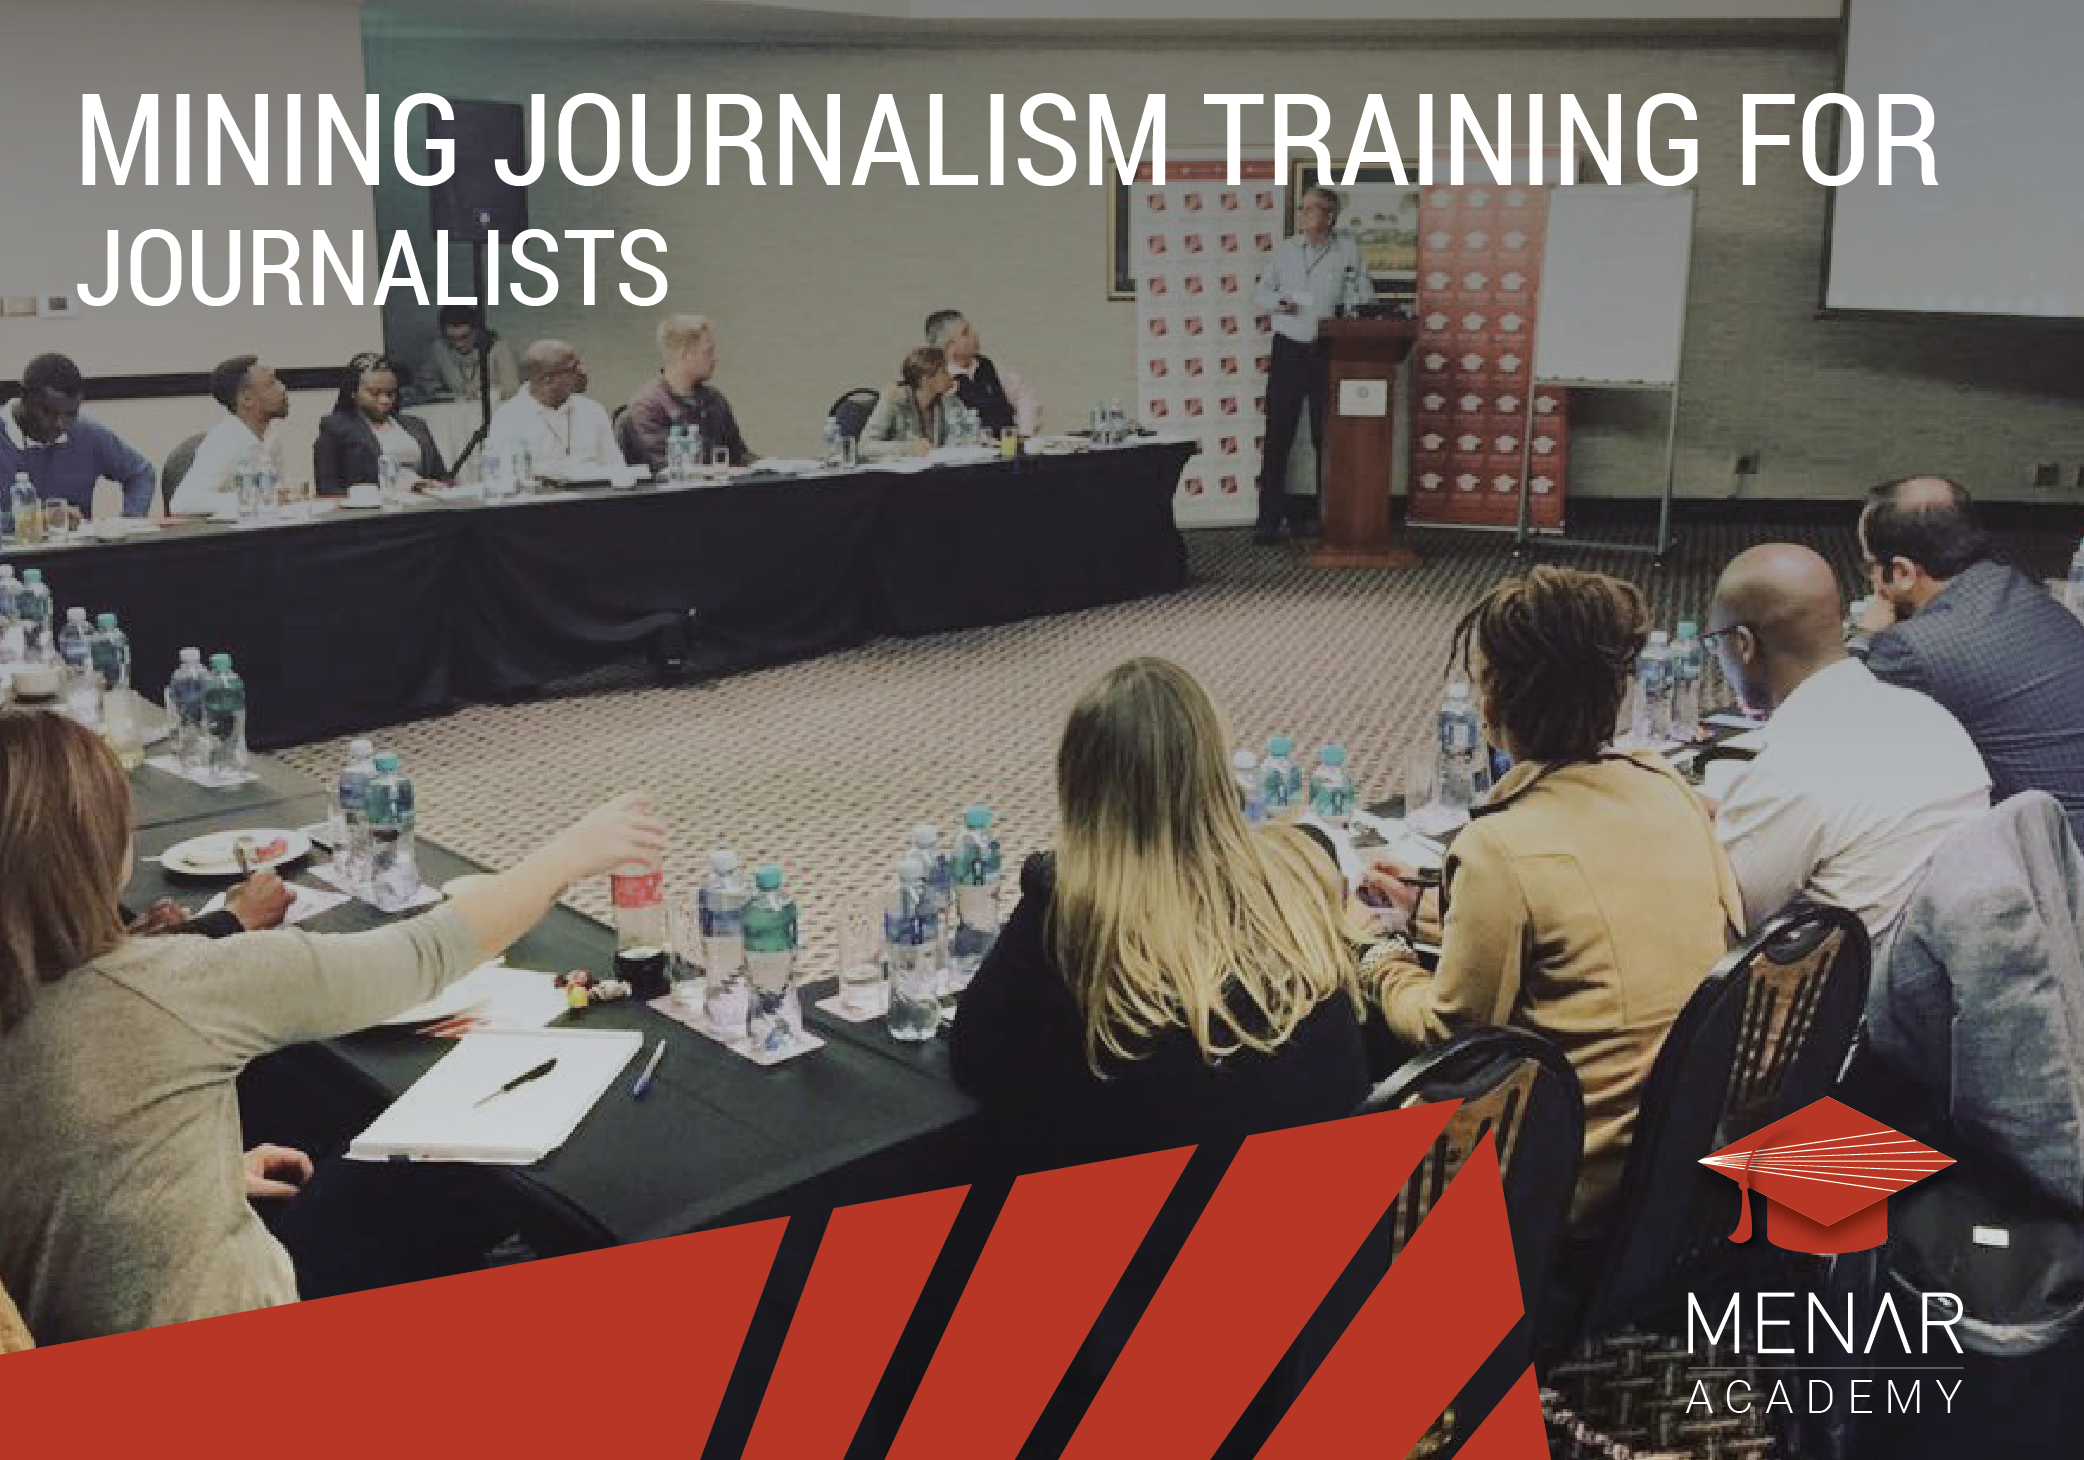 MINING JOURNALISM TRAINING FOR JOURNALISTS  Mining experts and senior journalists lectured for mining journalism...   Instagram   Facebook